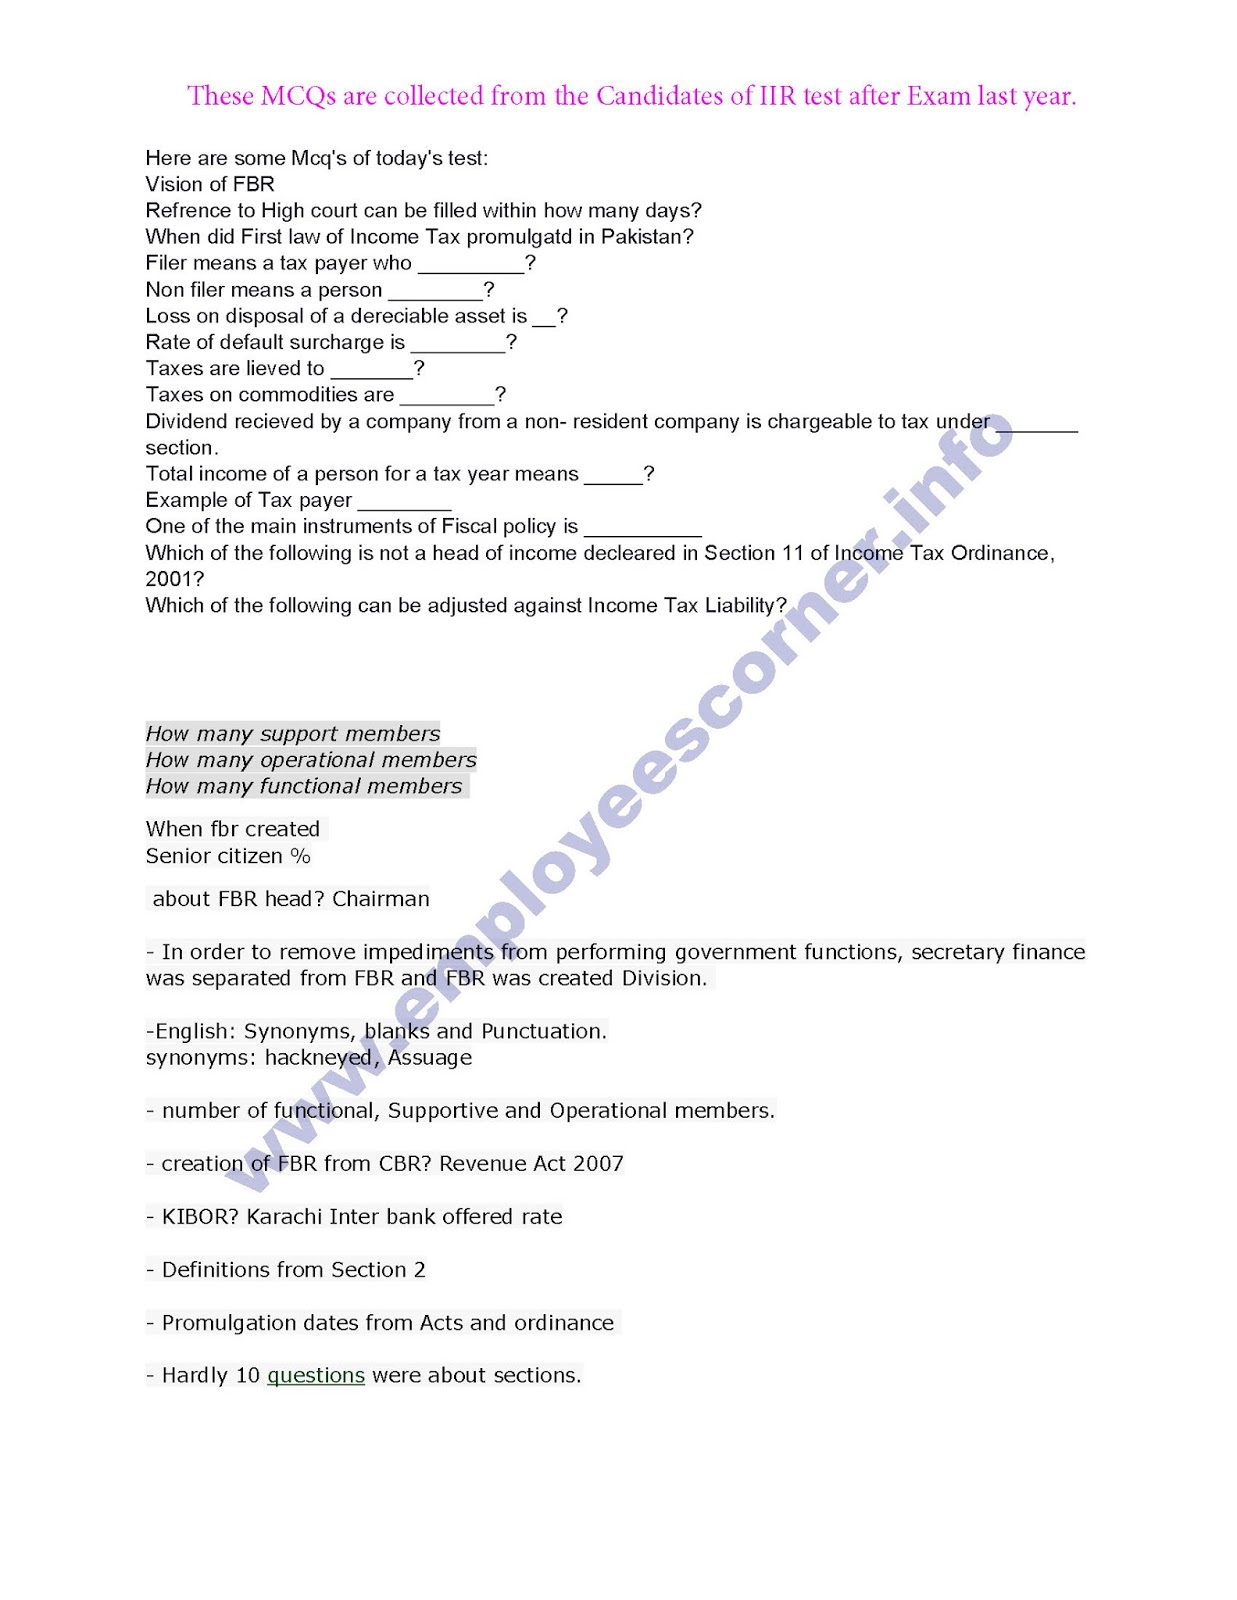 essay on private job Home career  career advice  jobs tips  writing the successful college application essay: tips for success  they are authorities on the job market.